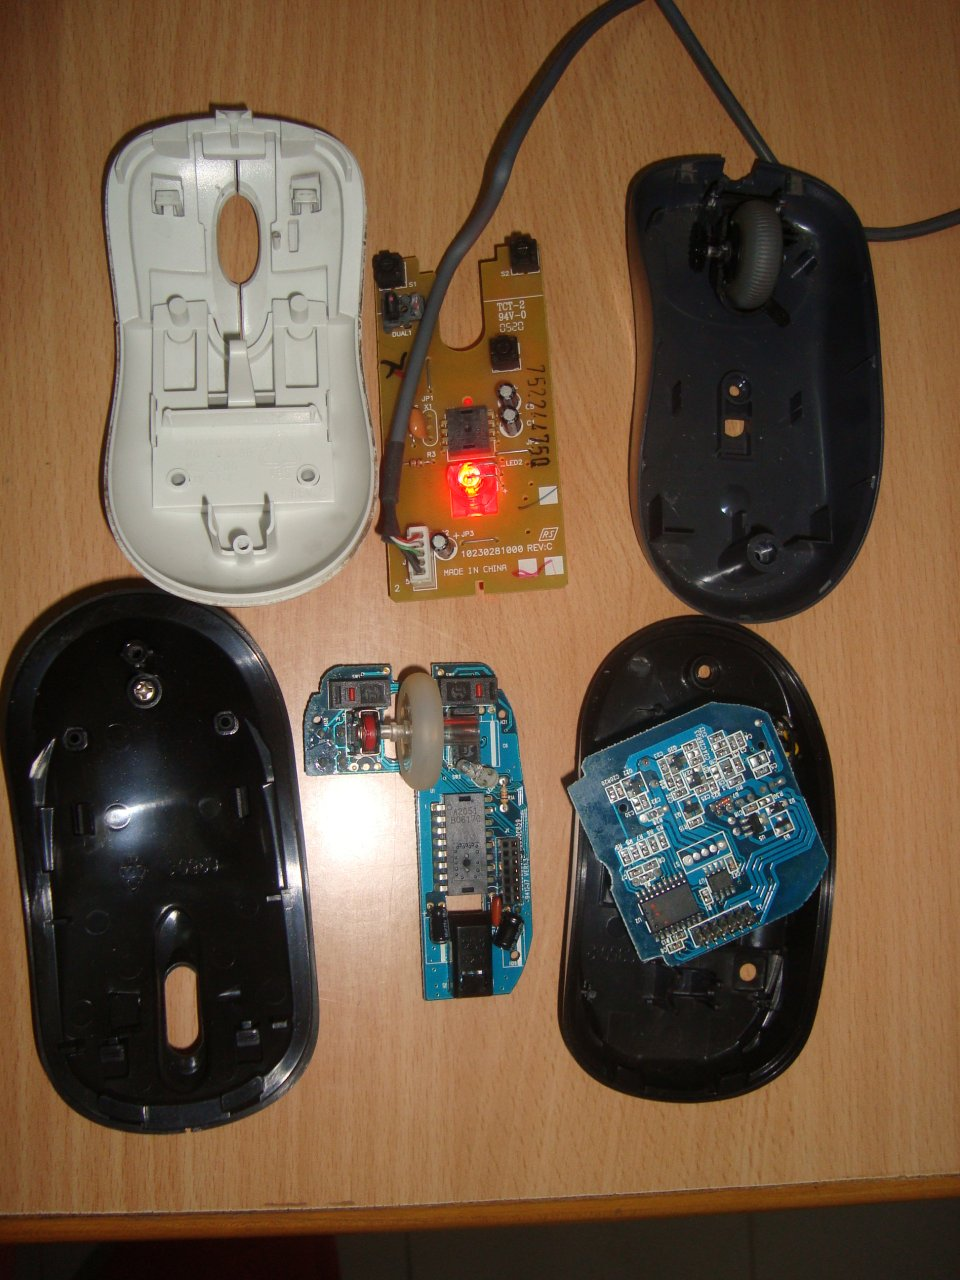 Microsoft Wired and Wireless Mouse